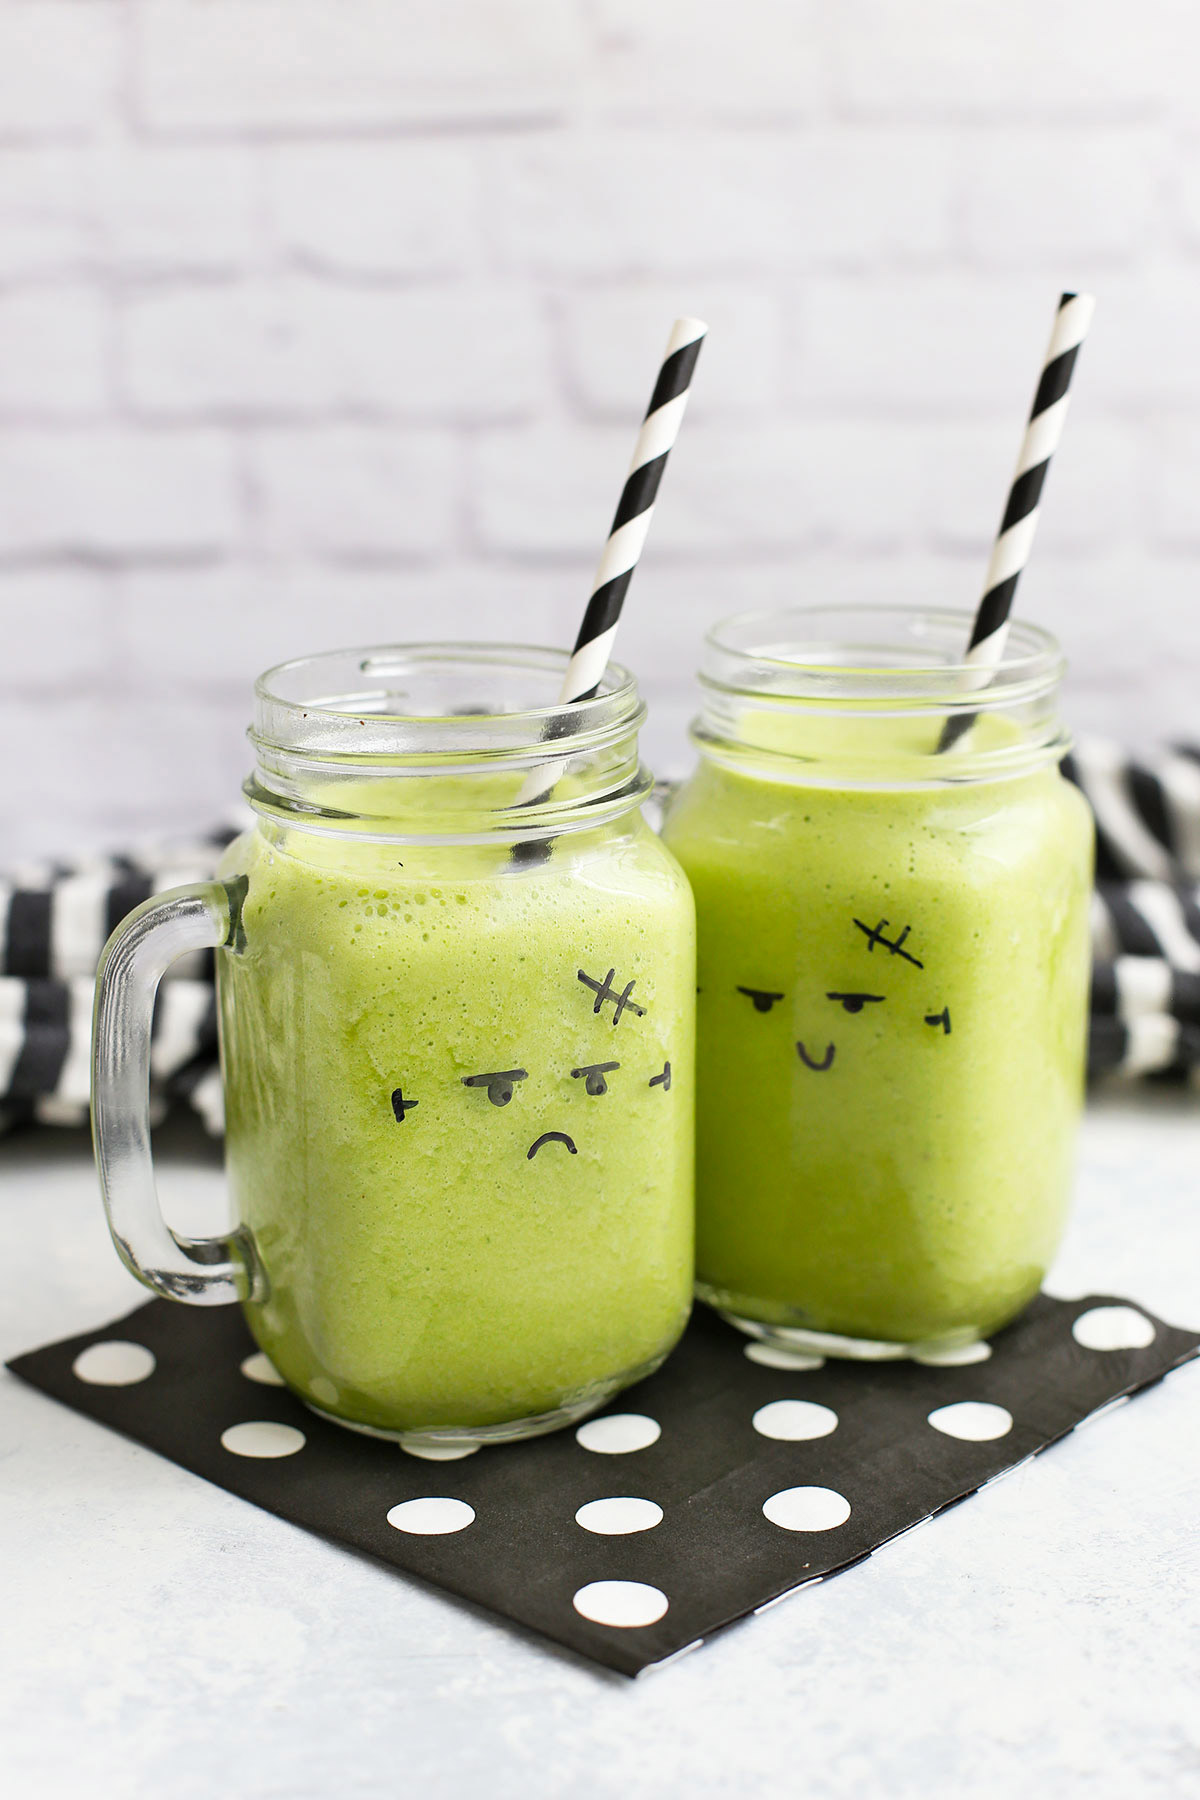 Two green smoothies in glasses with monster faces drawn on them.